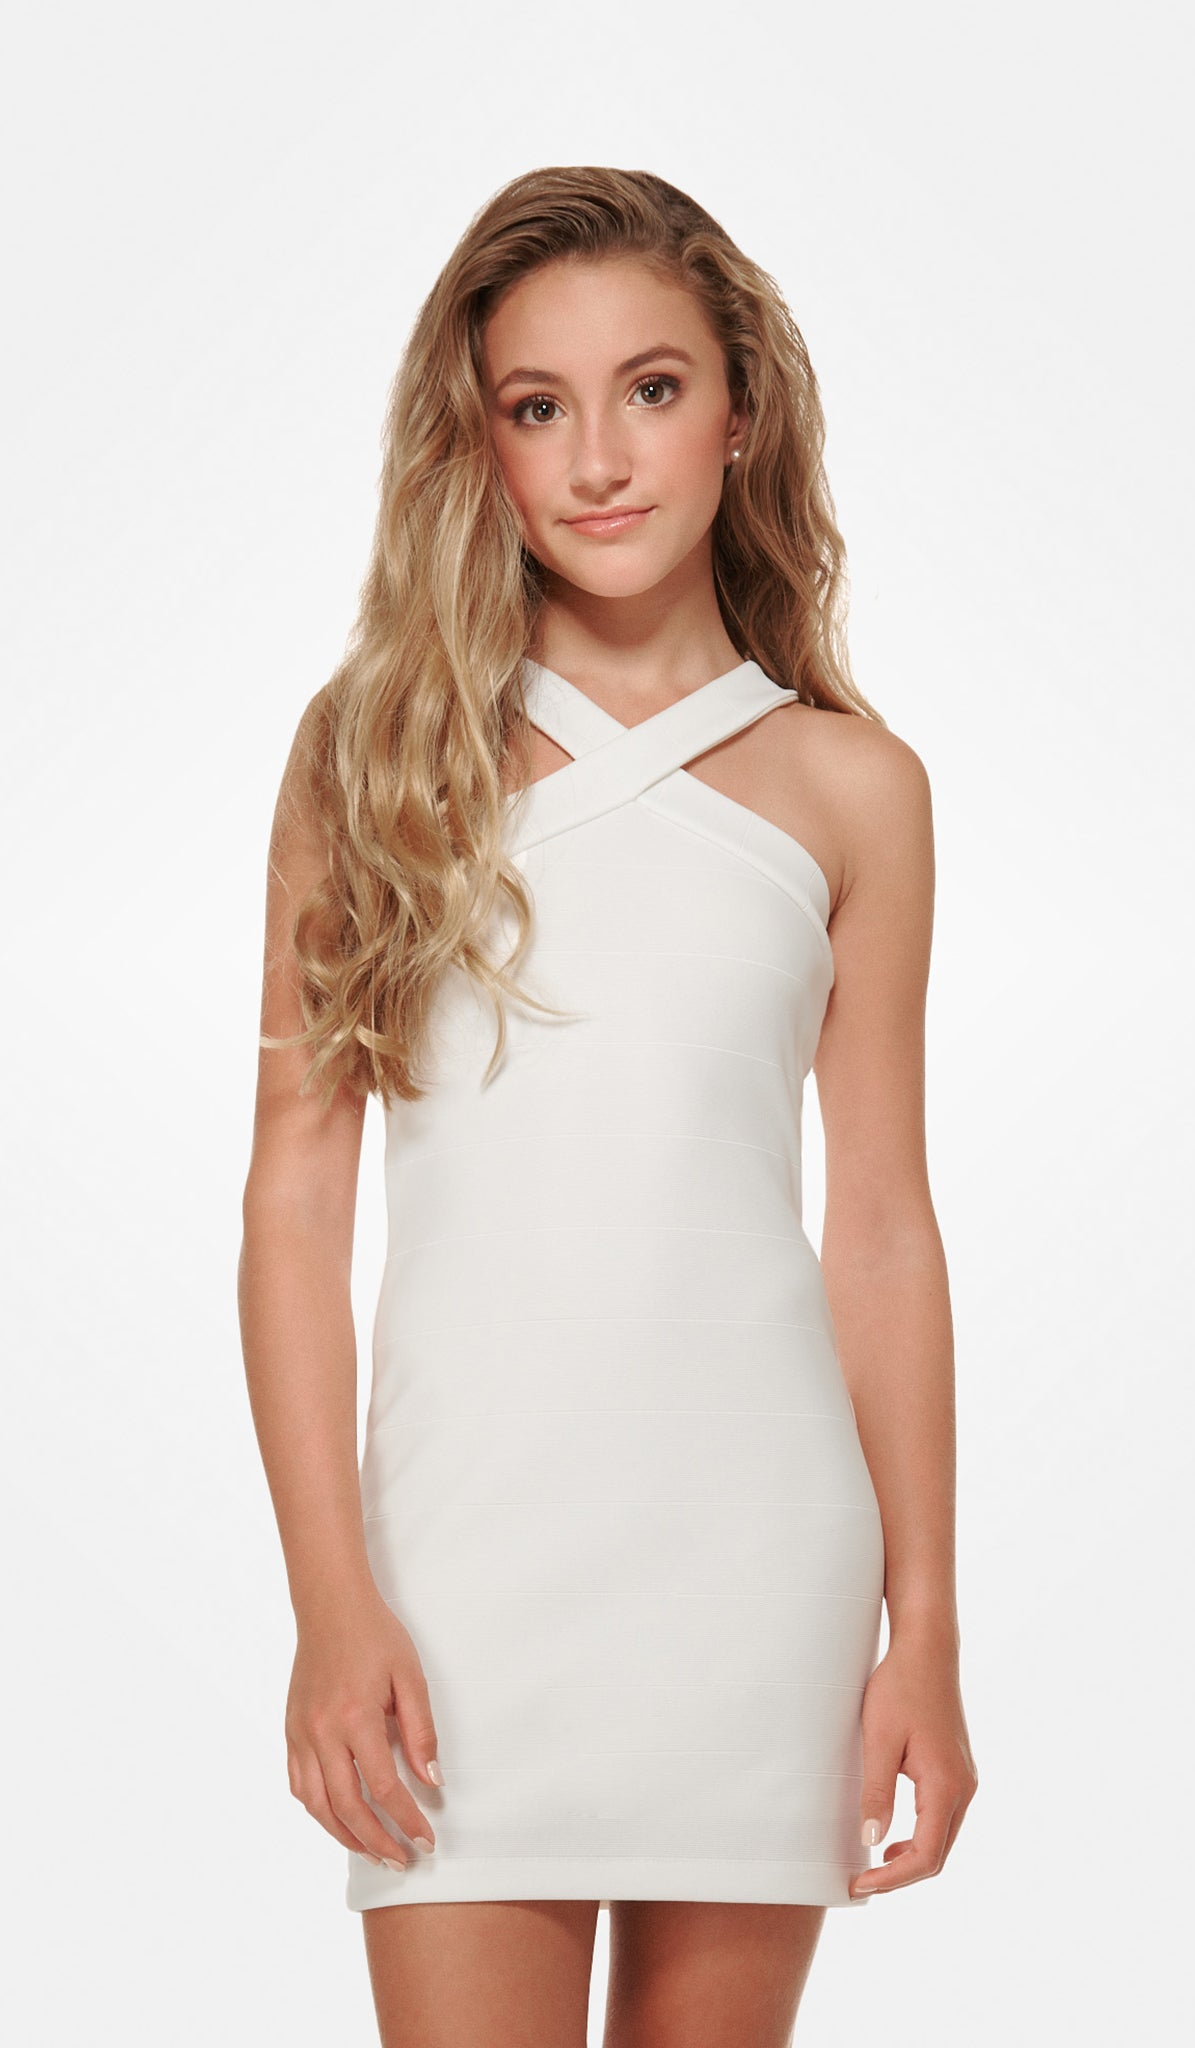 The Sally Miller Sierra Dress - Ivory textured knit bodycon v-neck fully lined dress with thick straps